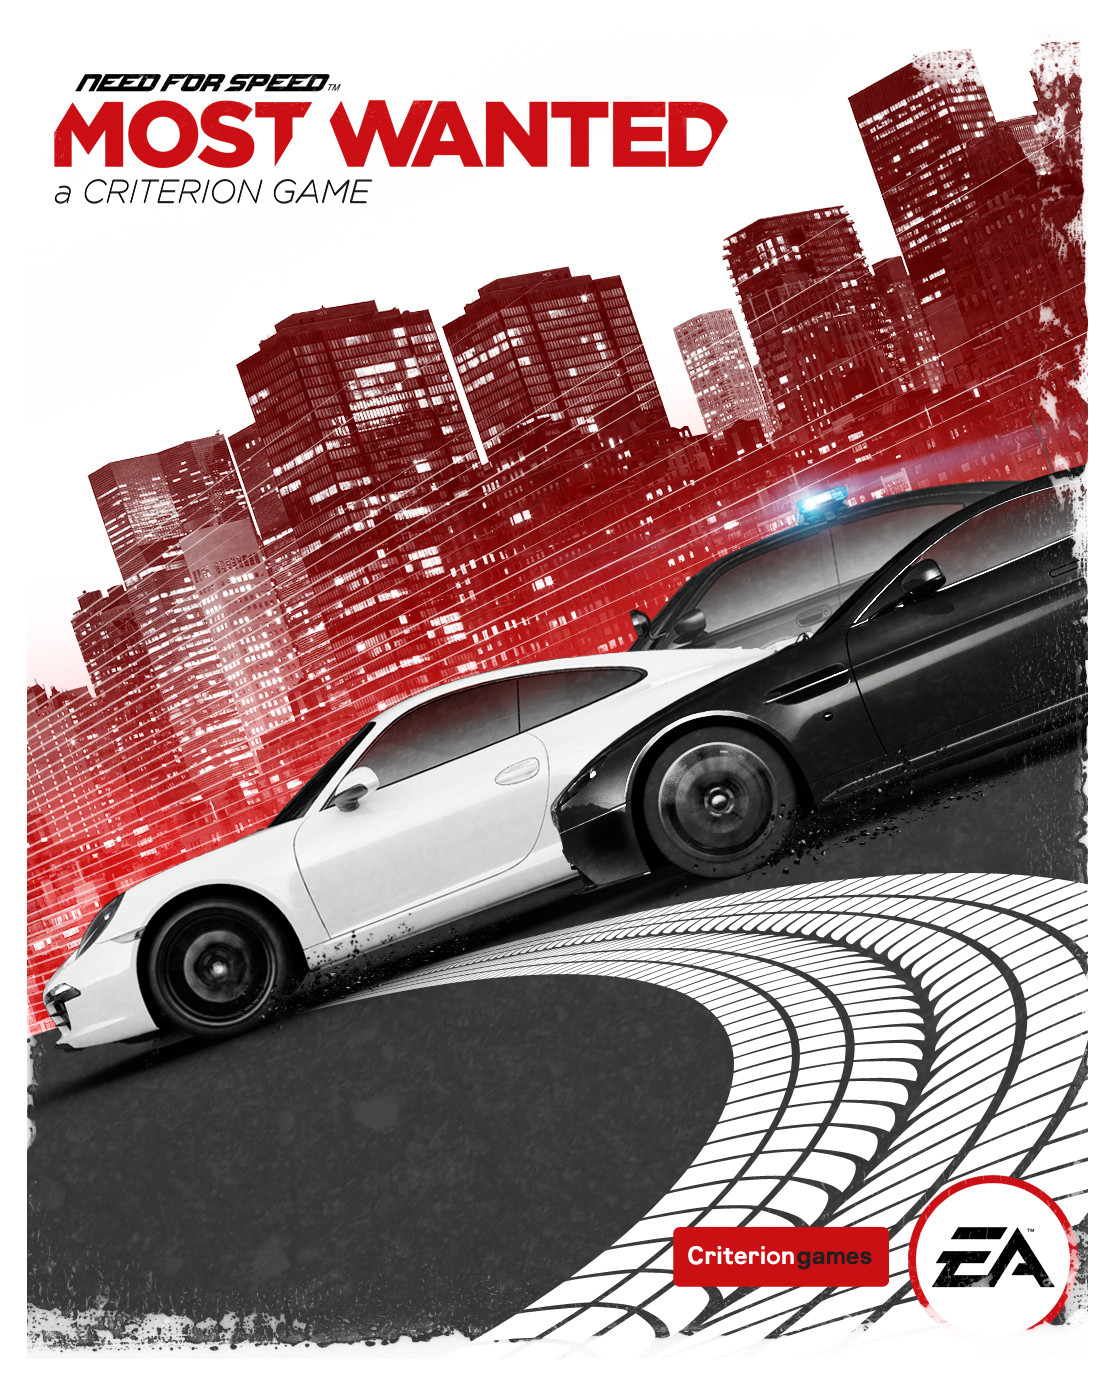 http://img5.downloadha.com/hosein/Game/March%202017/06/Need-for-Speed-Most-Wanted-Limited-Edition-pc-cover-large.jpg